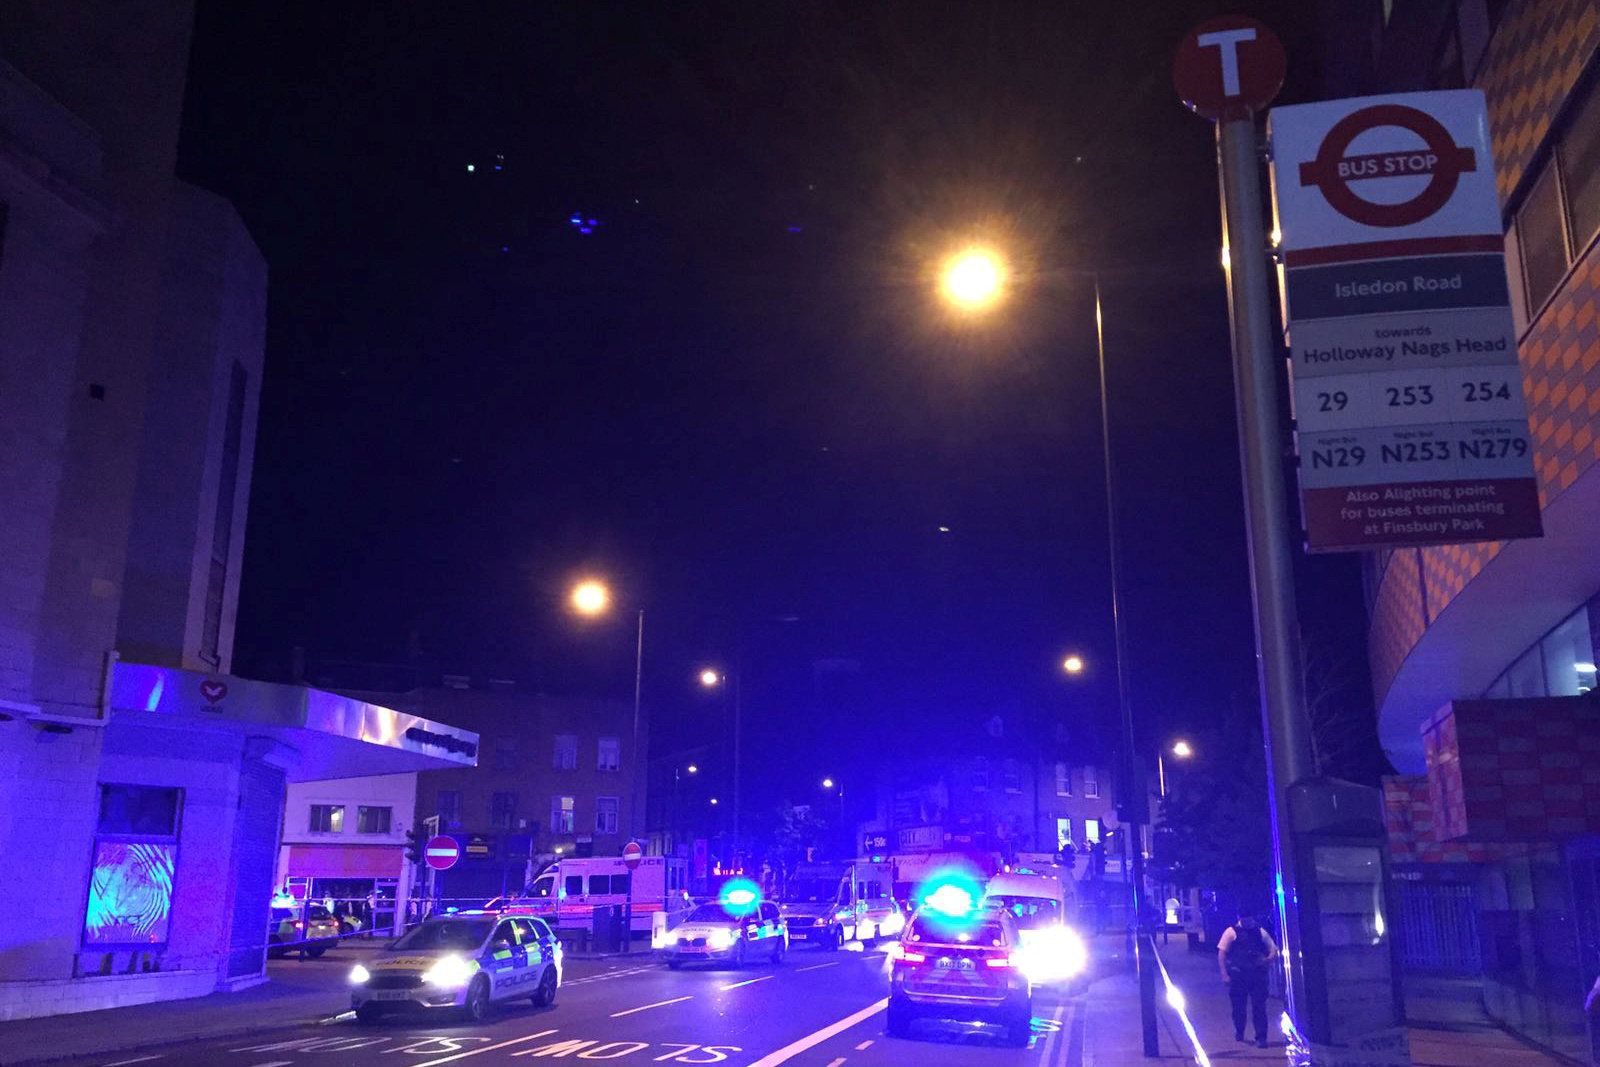 Injuries Reported After Vehicle Hits Pedestrians In